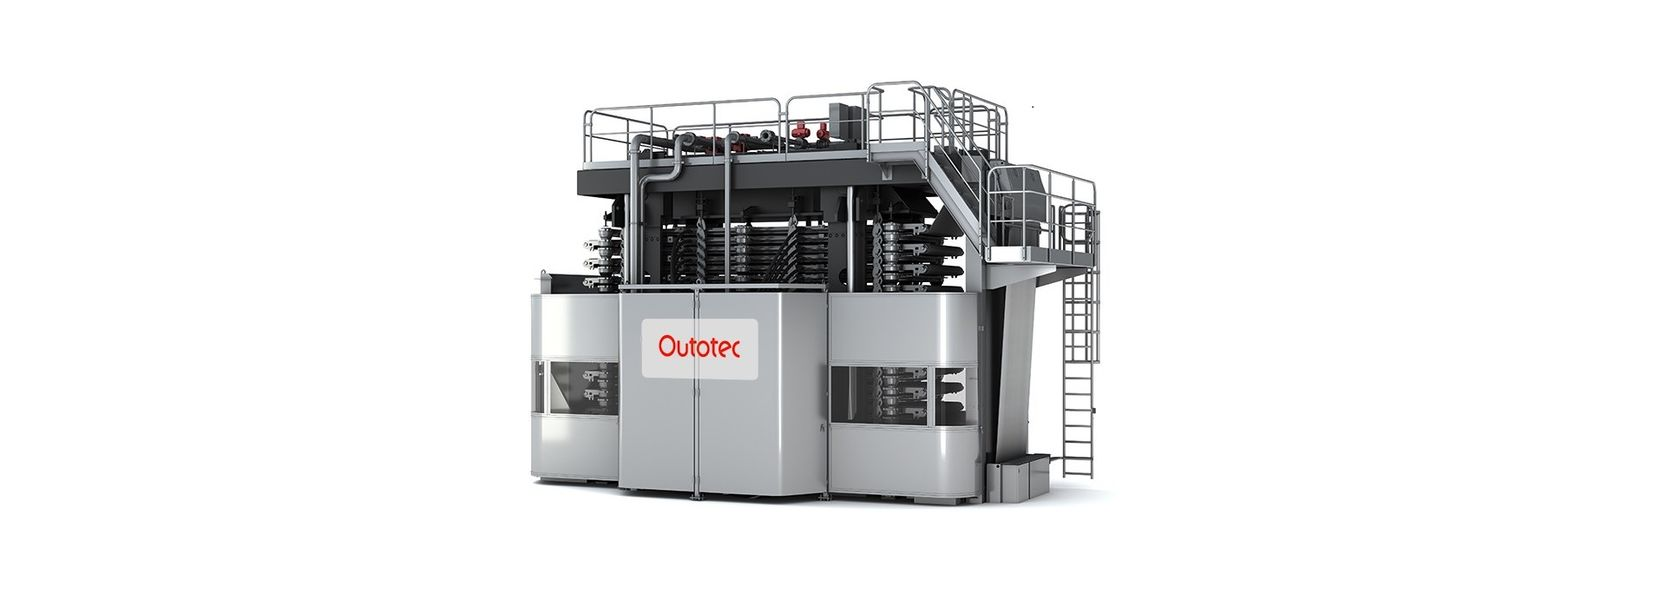 Outotec delivers filtration tech for a lithium plant